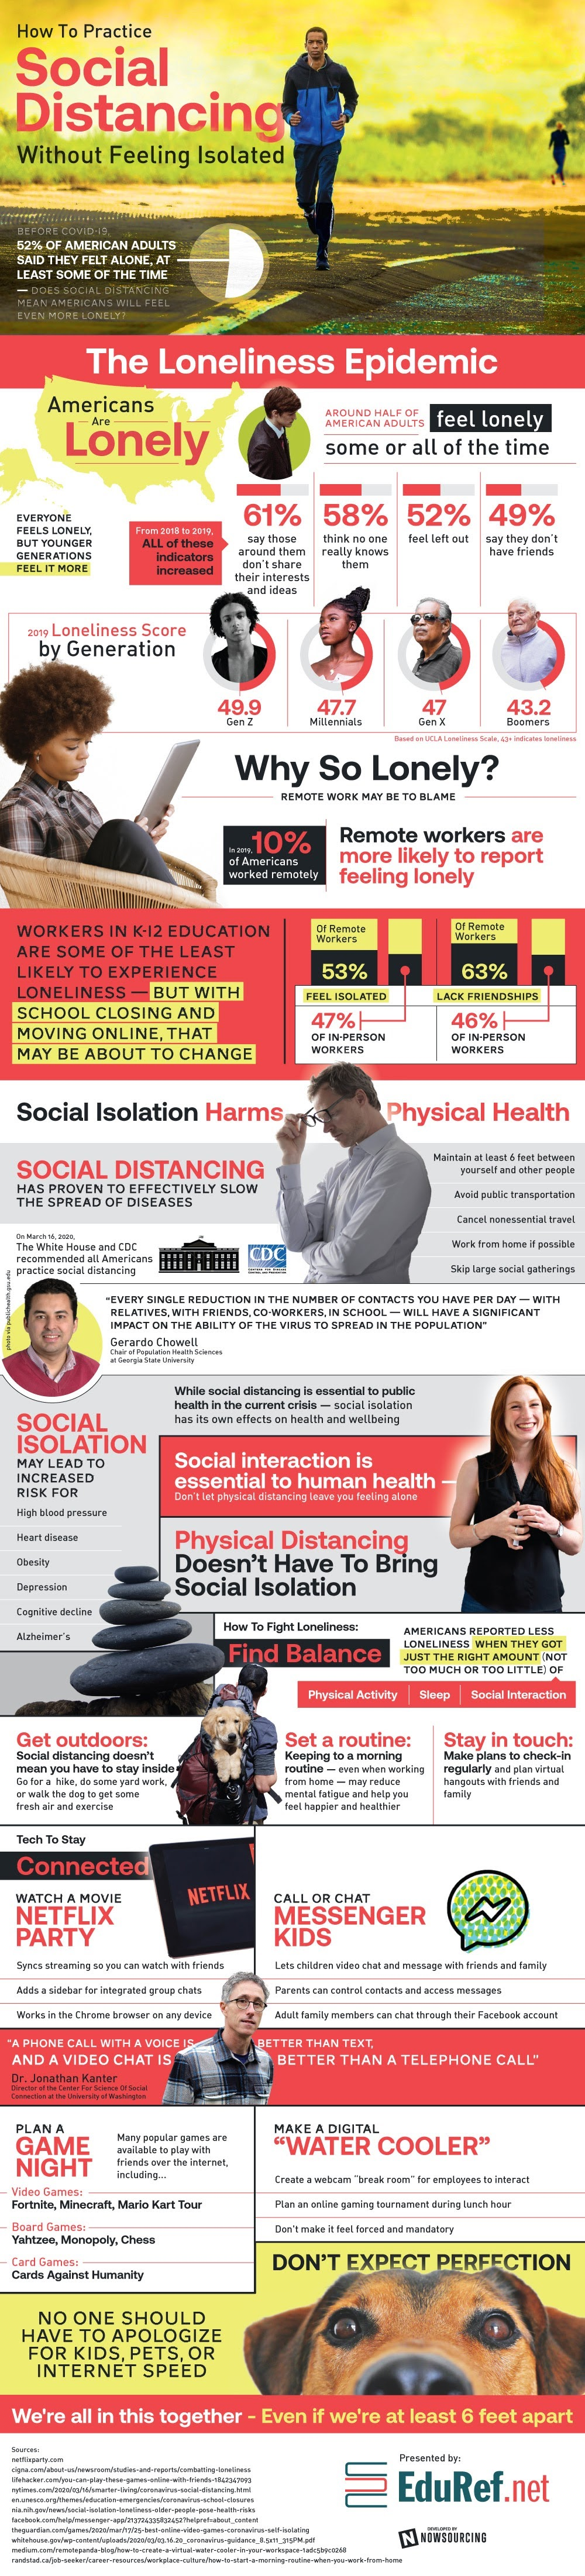 Social Distancing Without Feeling Isolated #infographic